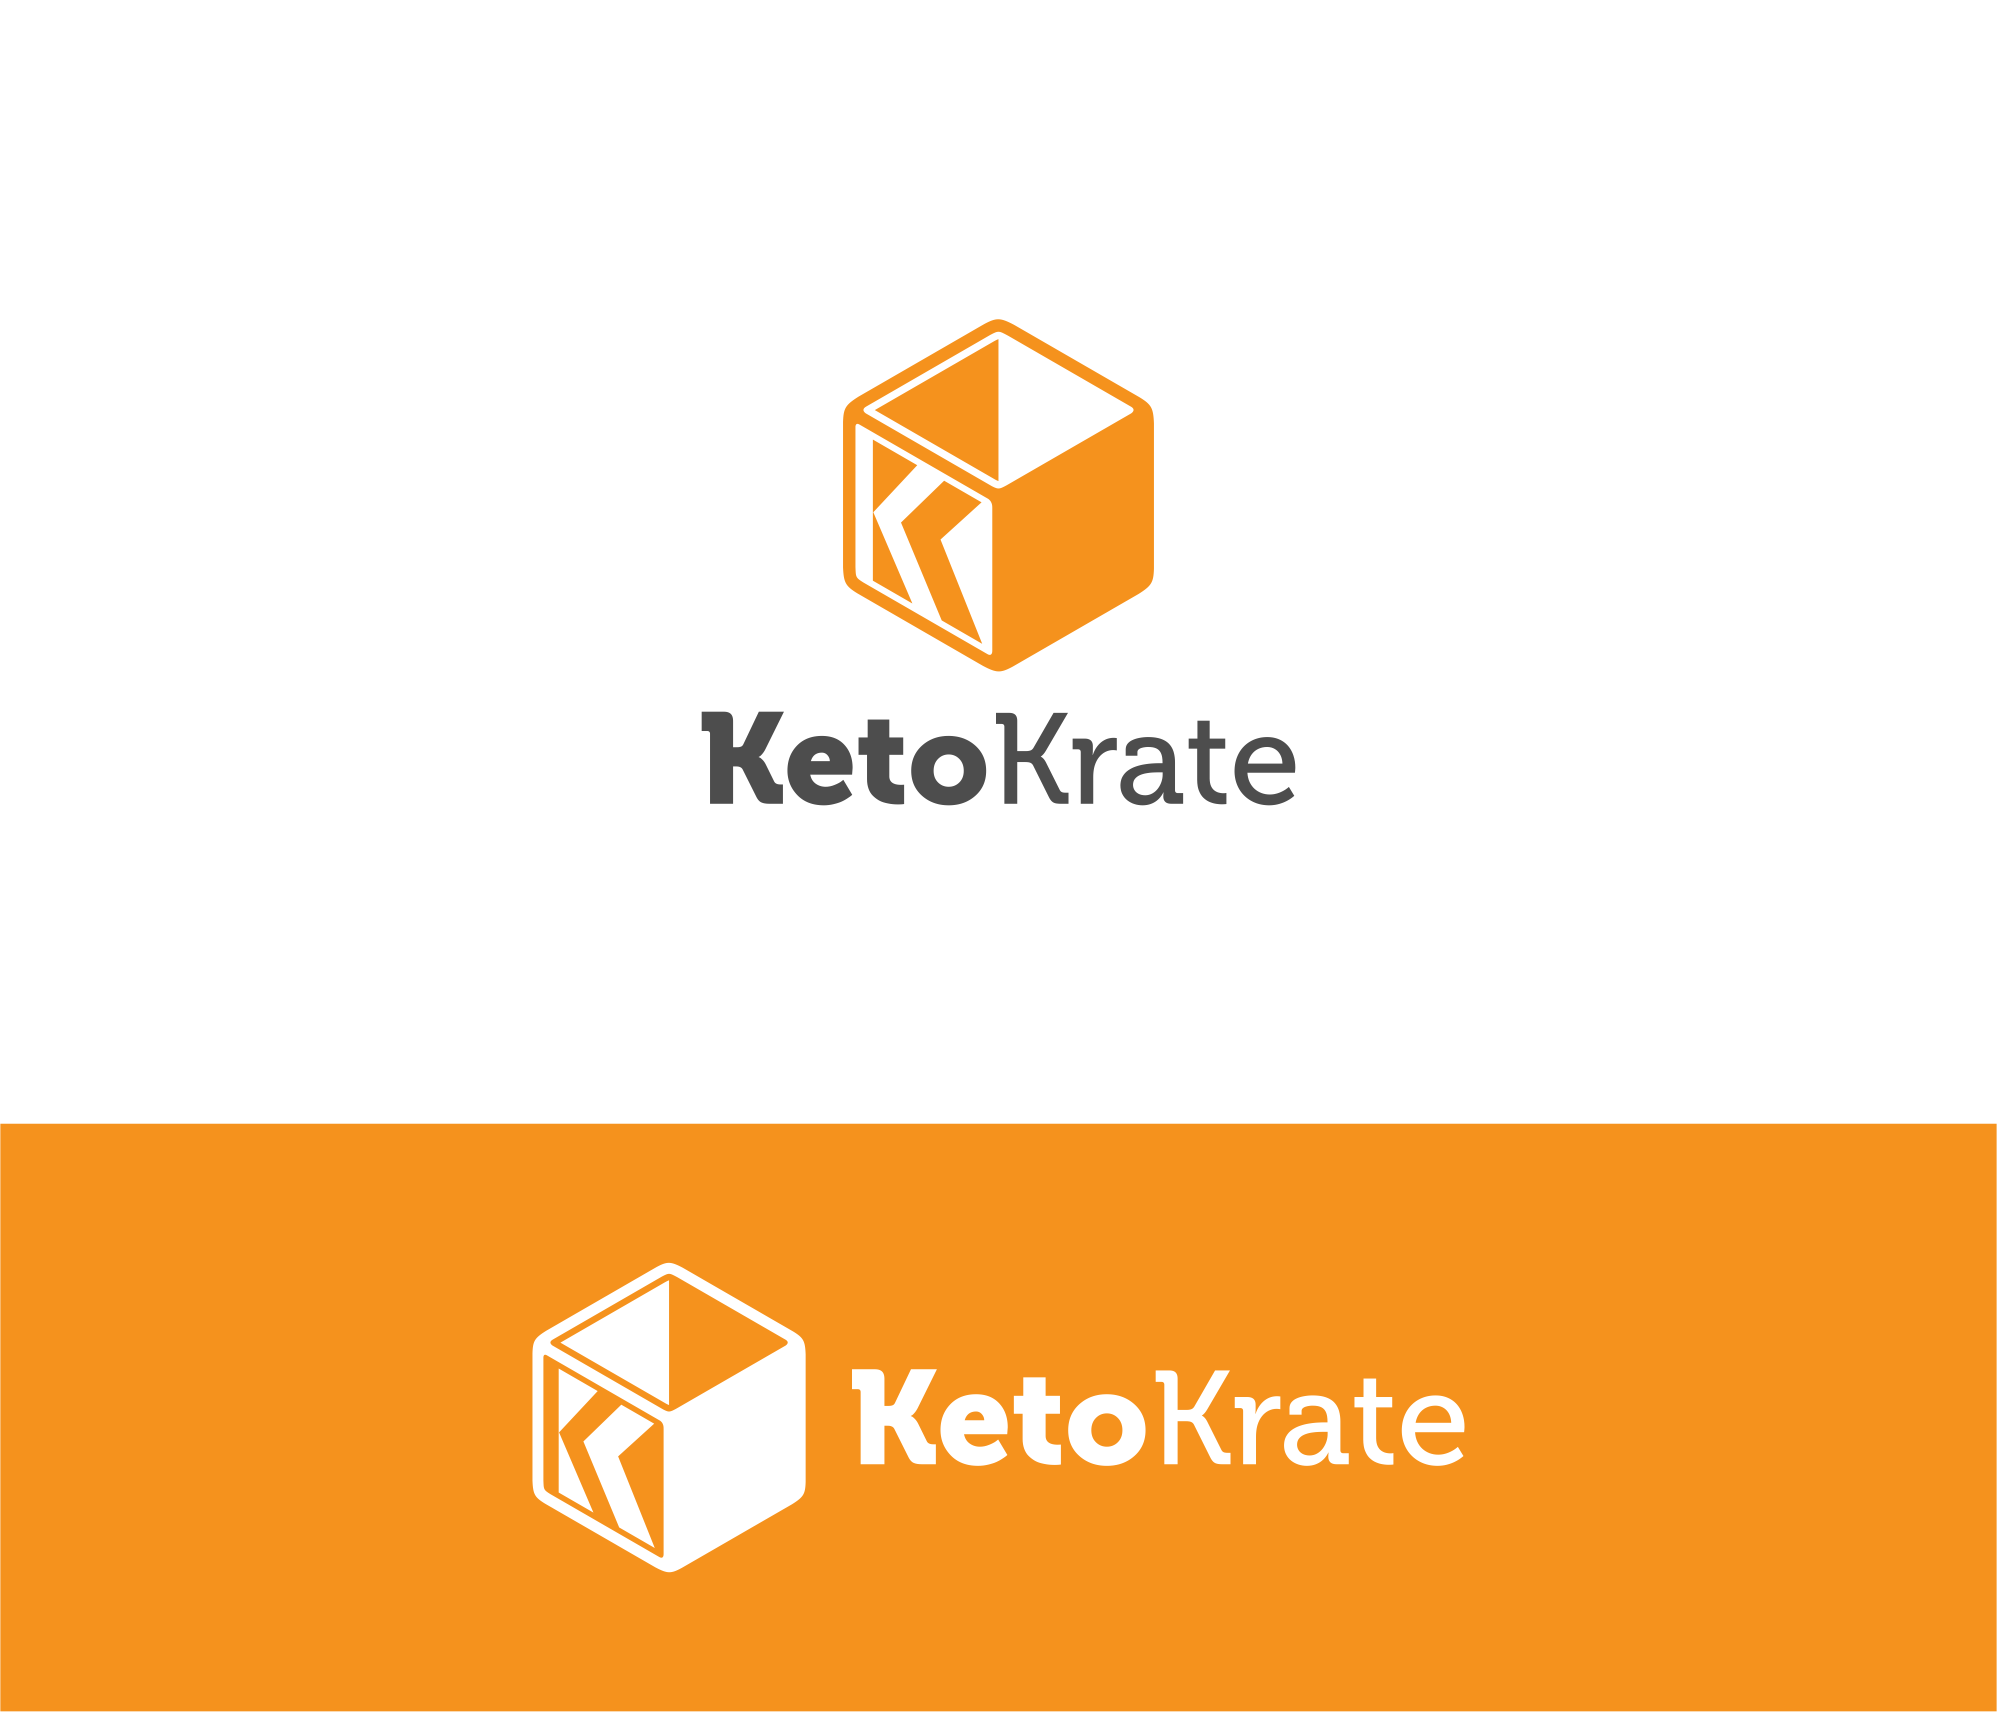 """Create a logo to use on our website and box for """"Keto Krate"""" subscription box."""